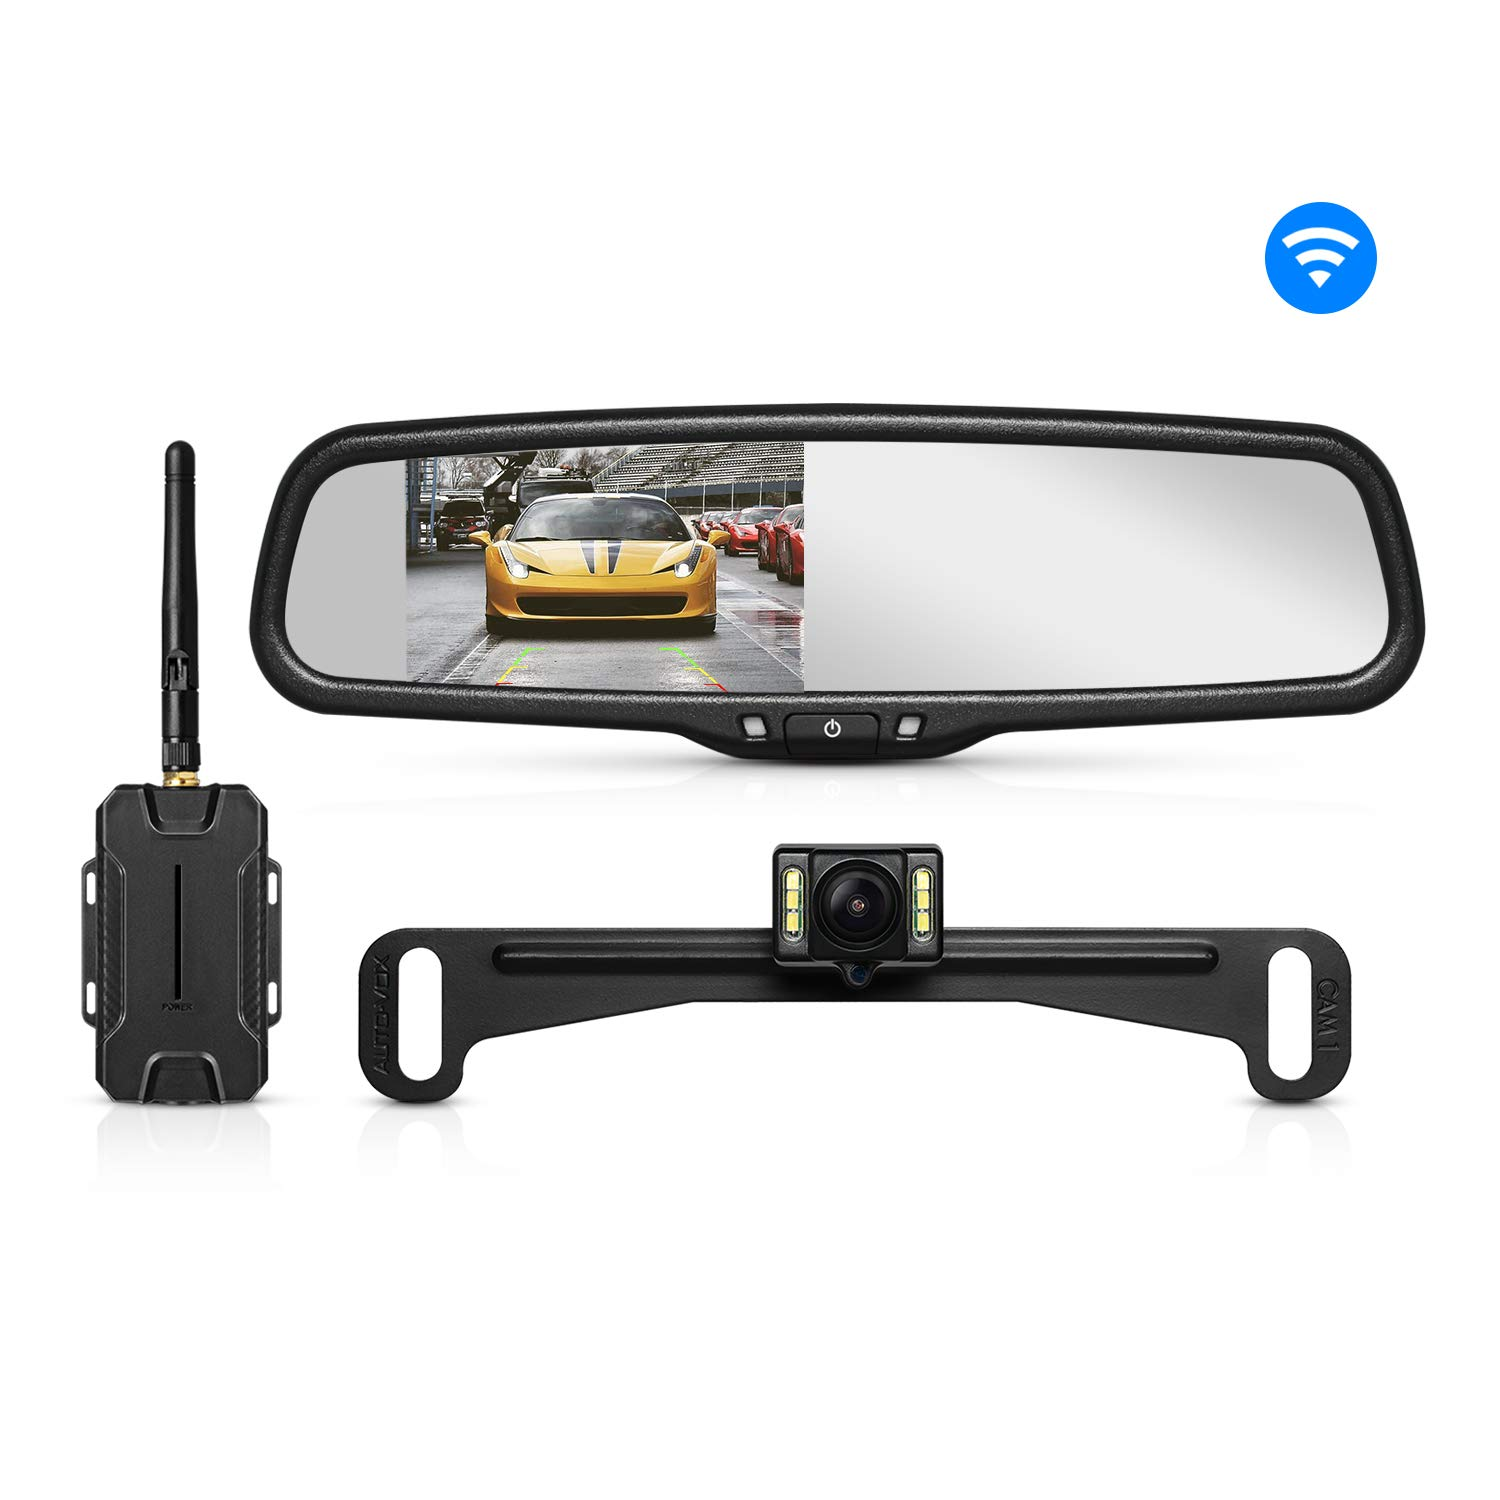 AUTO-VOX Dual Video Inputs 4.3' Auto Adjusting Brightness Car Rear View Mirror for Toyota Honda Nissan Mazda Hyundai Kia Ford Pickup and Most Car Model RVS-T1400A-19